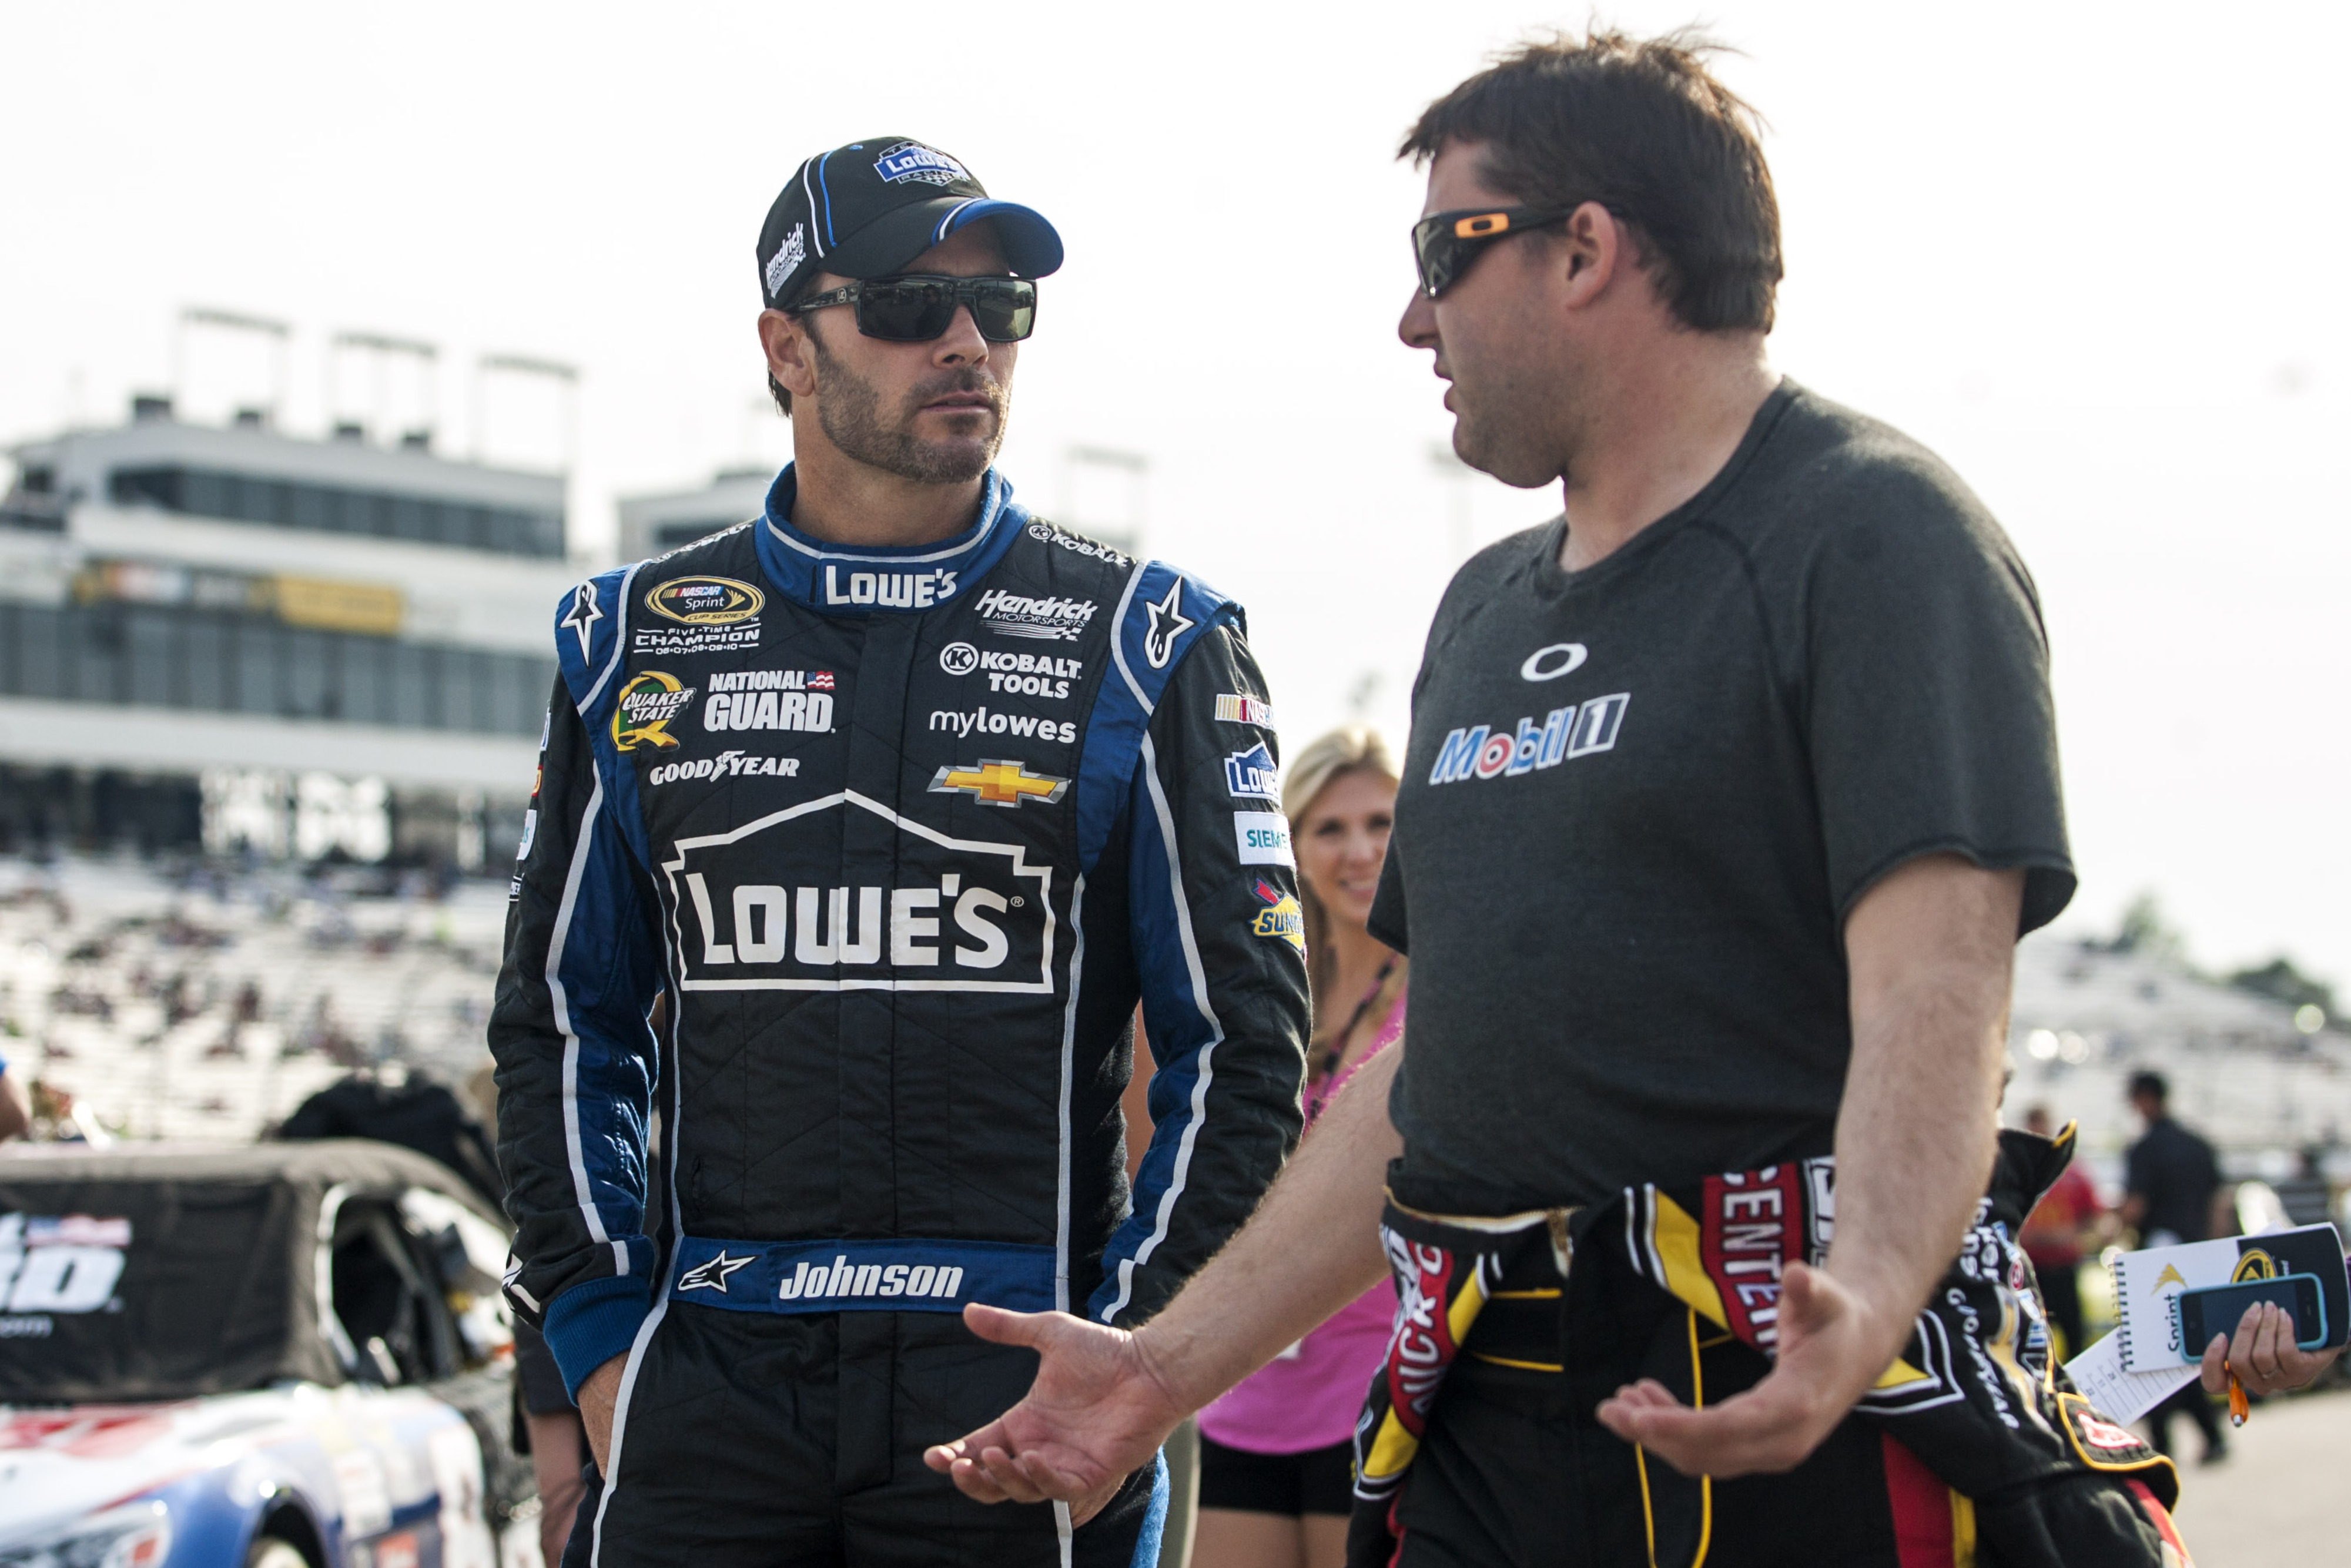 NASCAR drivers react to Kevin Ward Jr., Tony Stewart incident